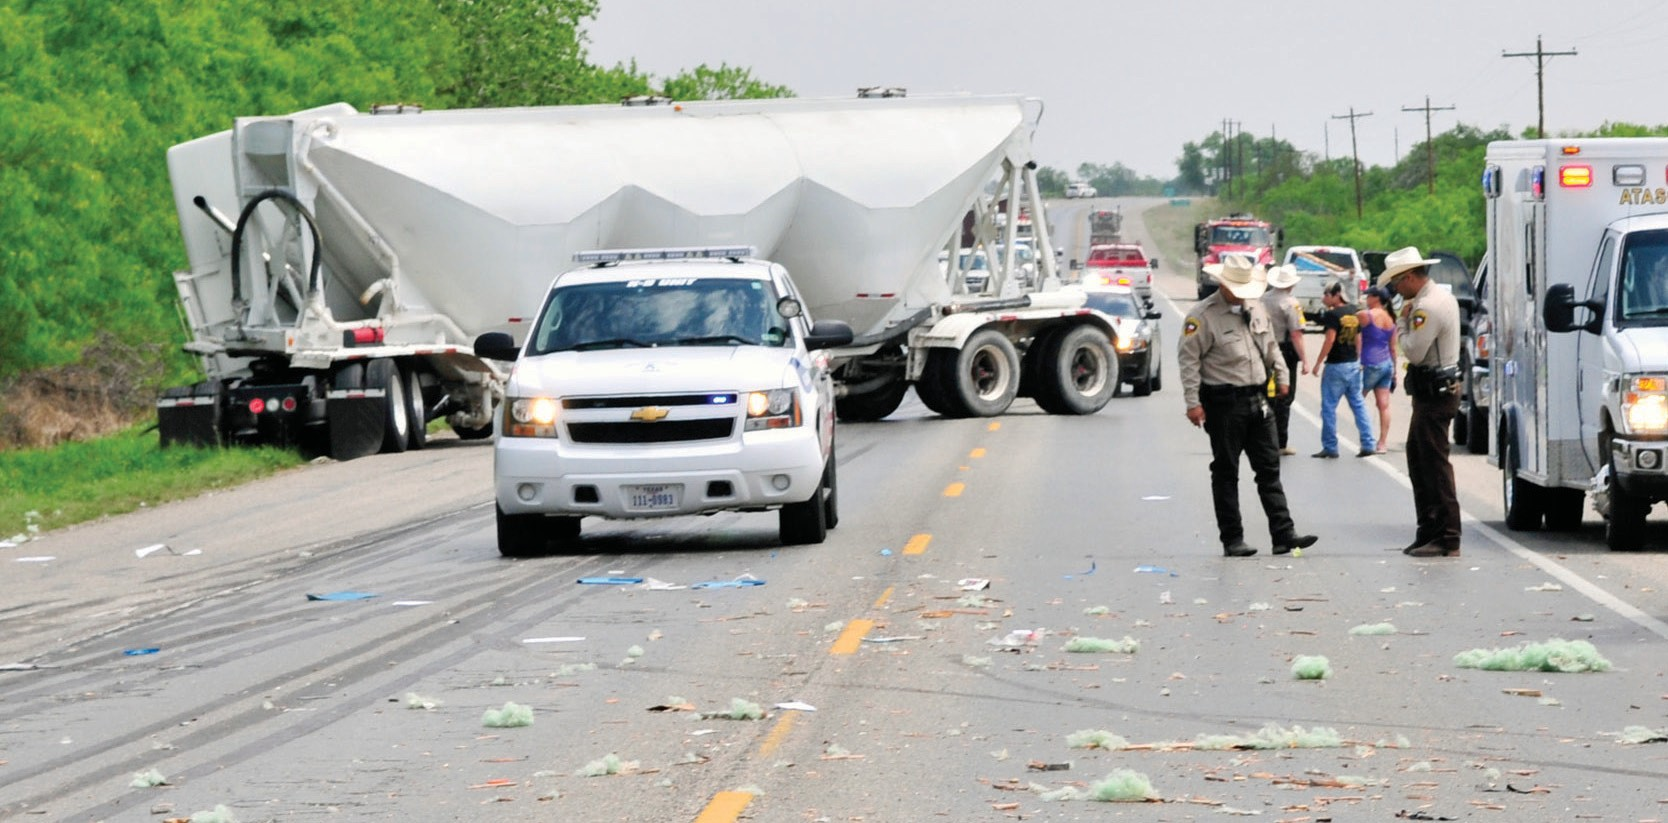 A trailer came off the back of a truck as it was driving between Jourdanton and Charlotte on Hwy. 97, causing two 18 wheelers to jack-knife as they attempted to avoid colliding with the trailer around 2 p.m. on Saturday, April 12. Jourdanton VFD worked the scene for over two hours. Two people involved were transported to STRMC.